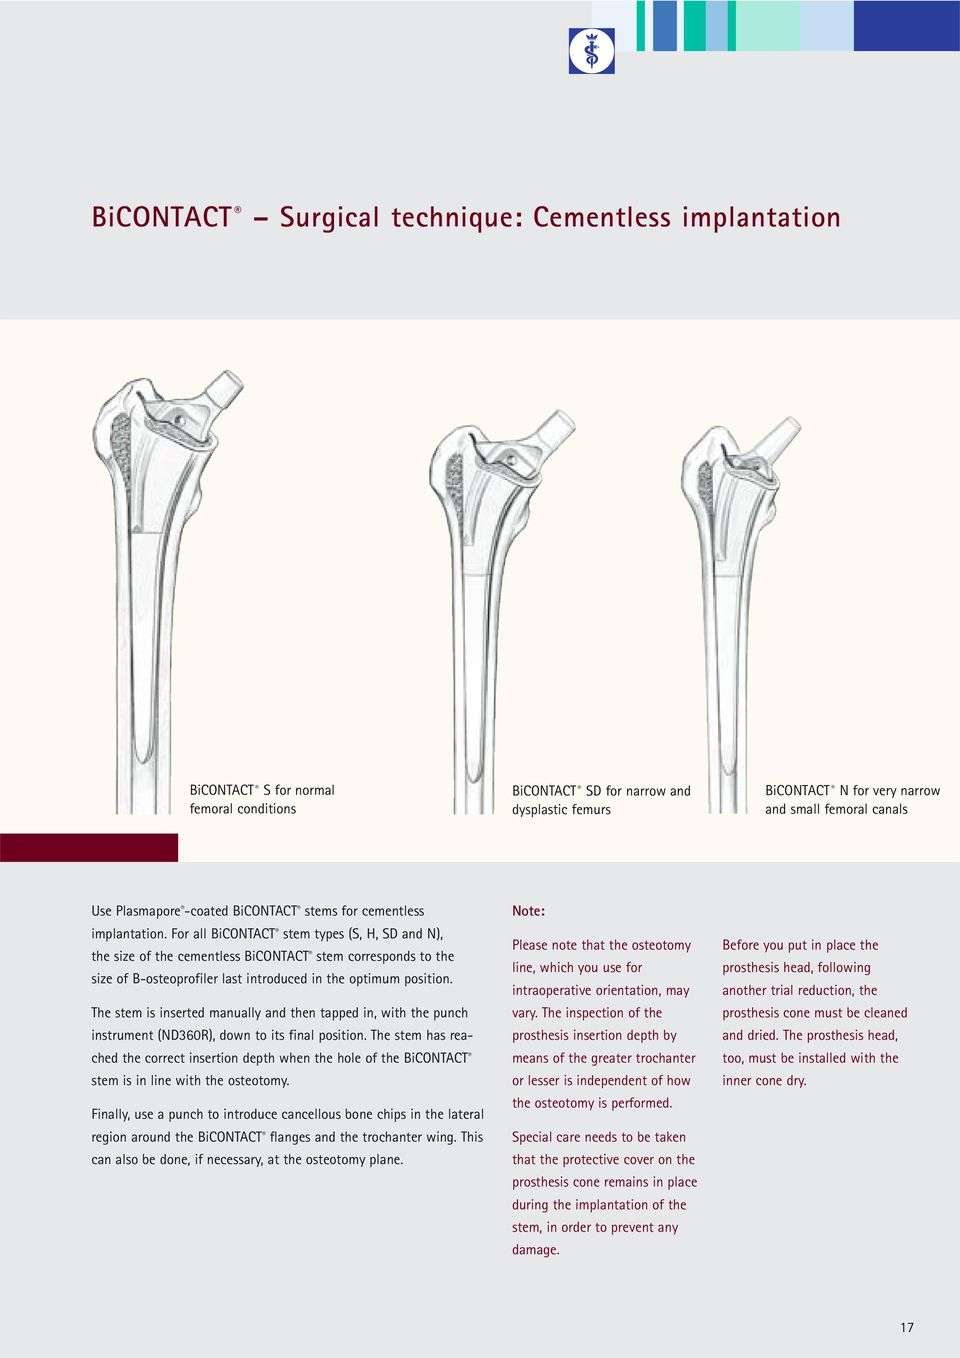 For all BiCONTACT stem types (S, H, SD and N), the size of the cementless BiCONTACT stem corresponds to the size of B-osteoprofiler last introduced in the optimum position.